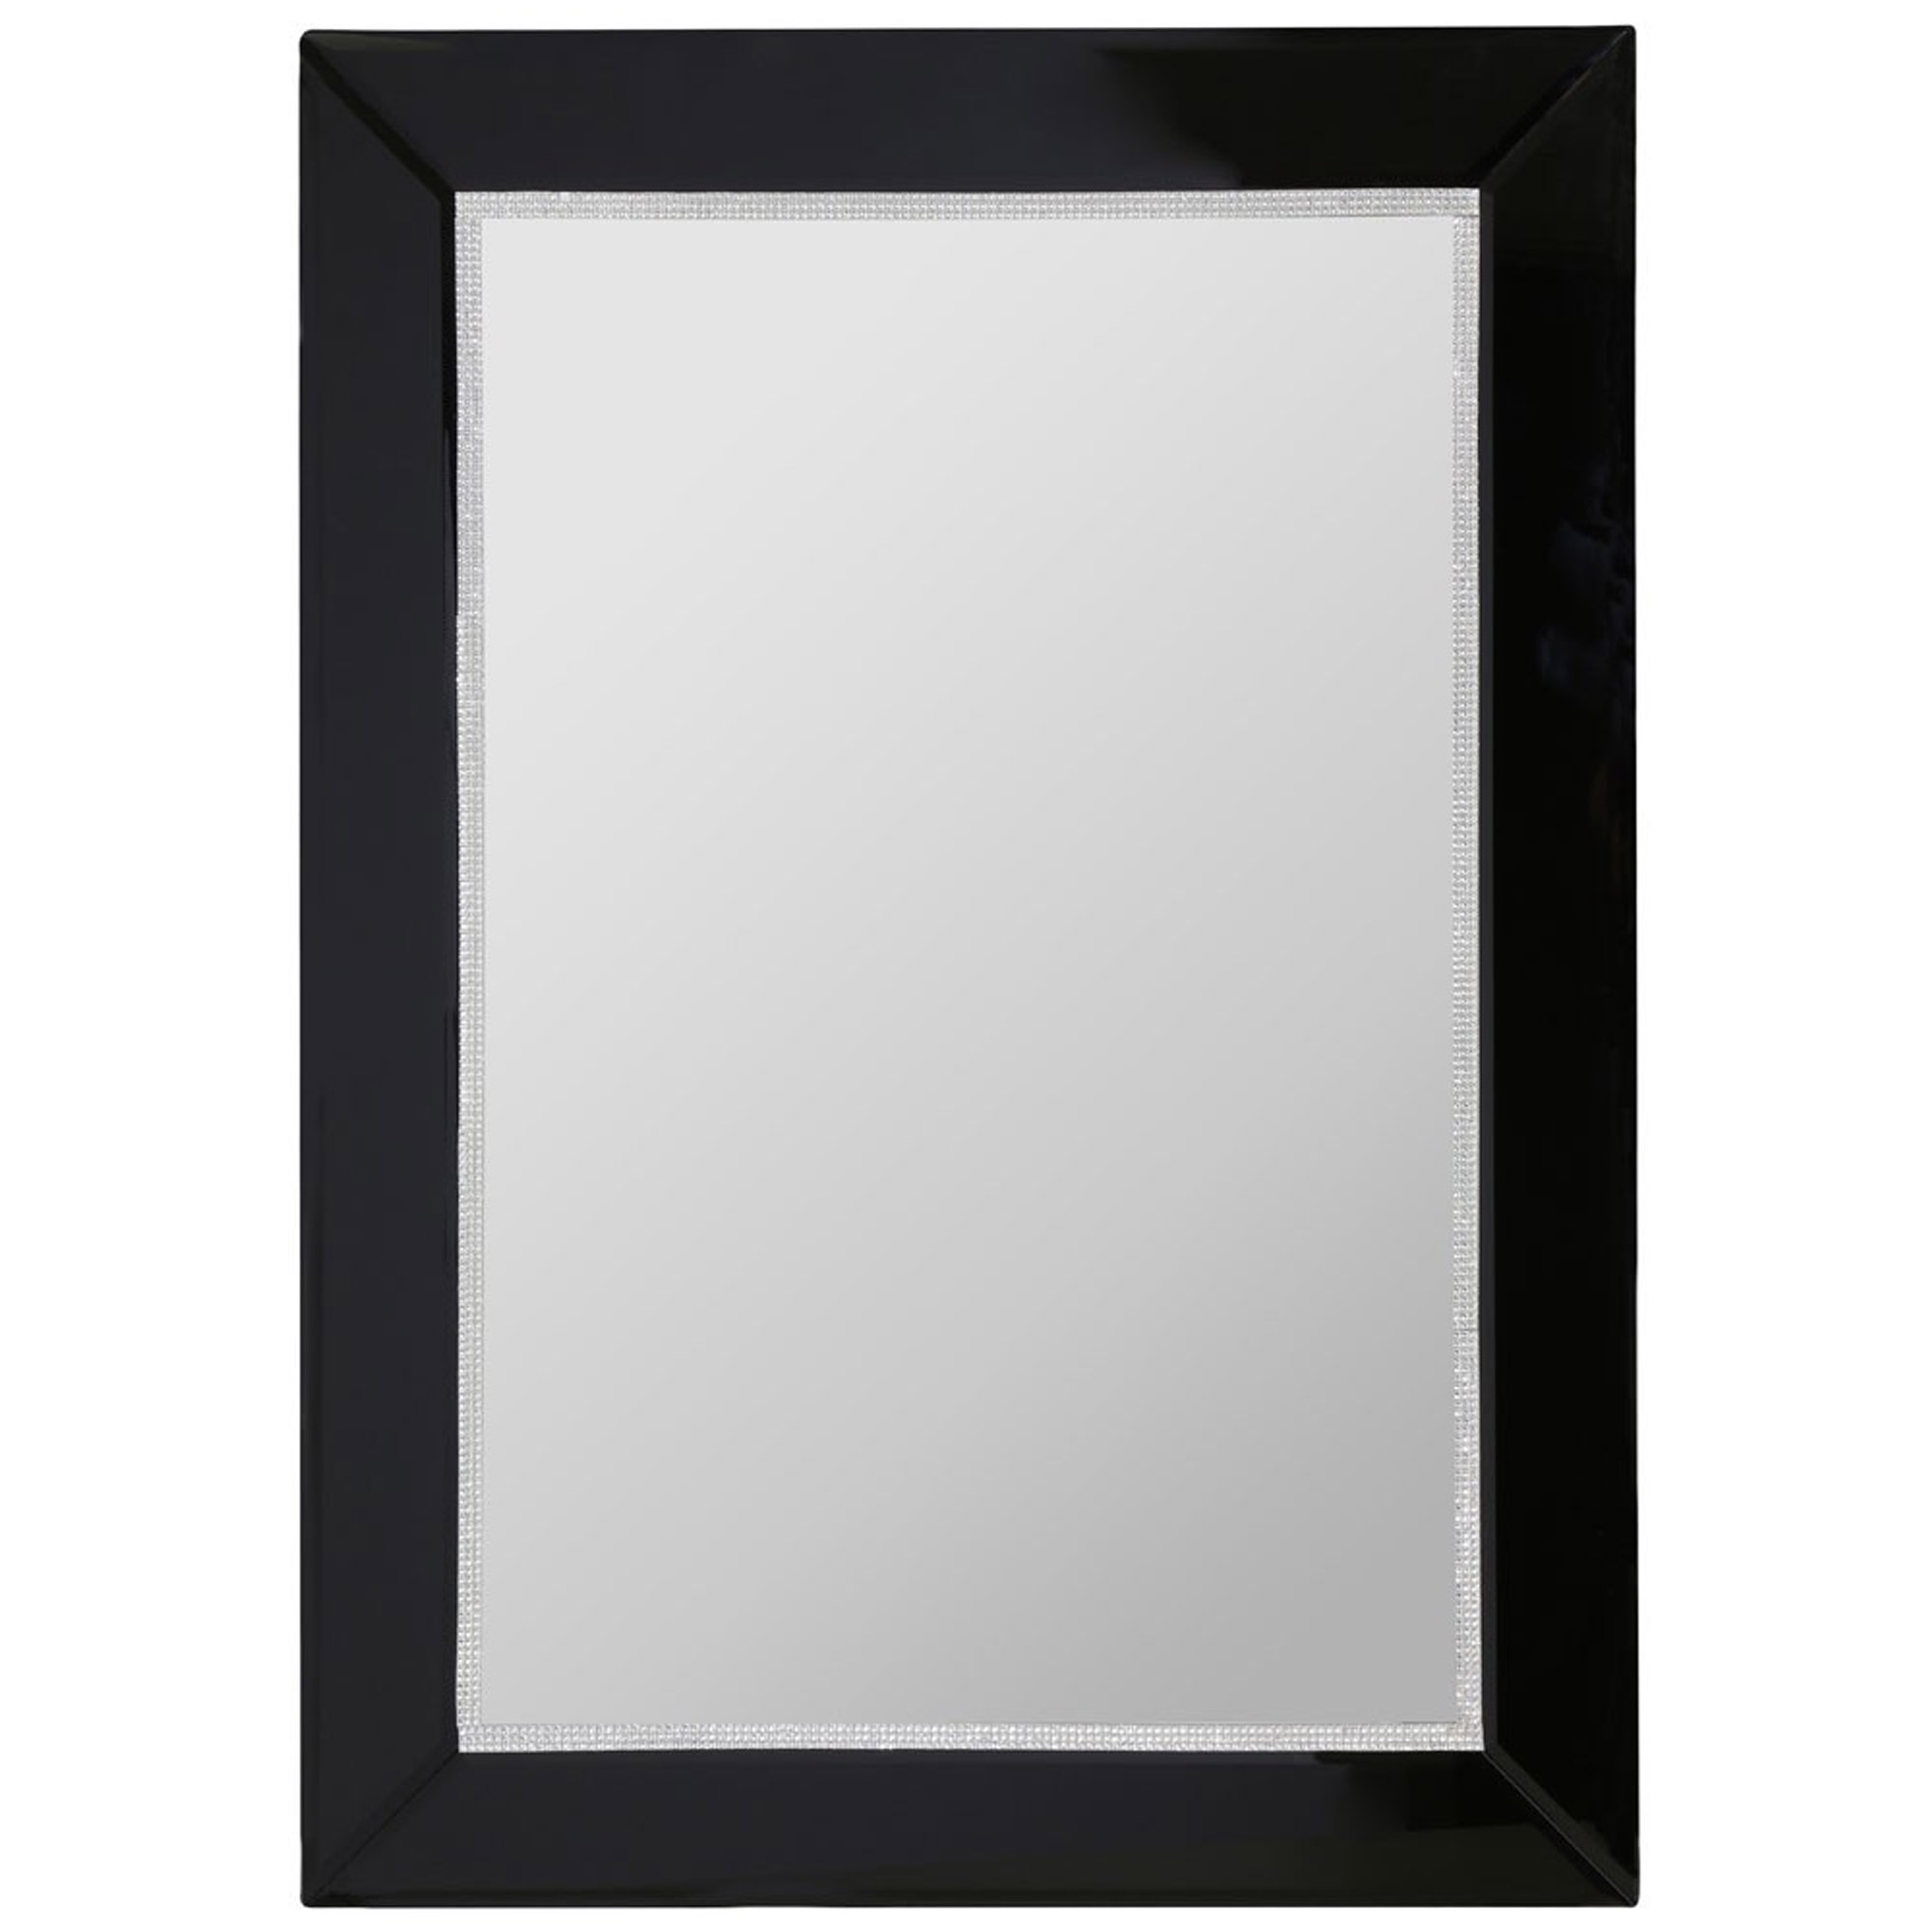 2019 Black Wall Mirror With Regard To Modern Black Wall Mirrors (Gallery 5 of 20)